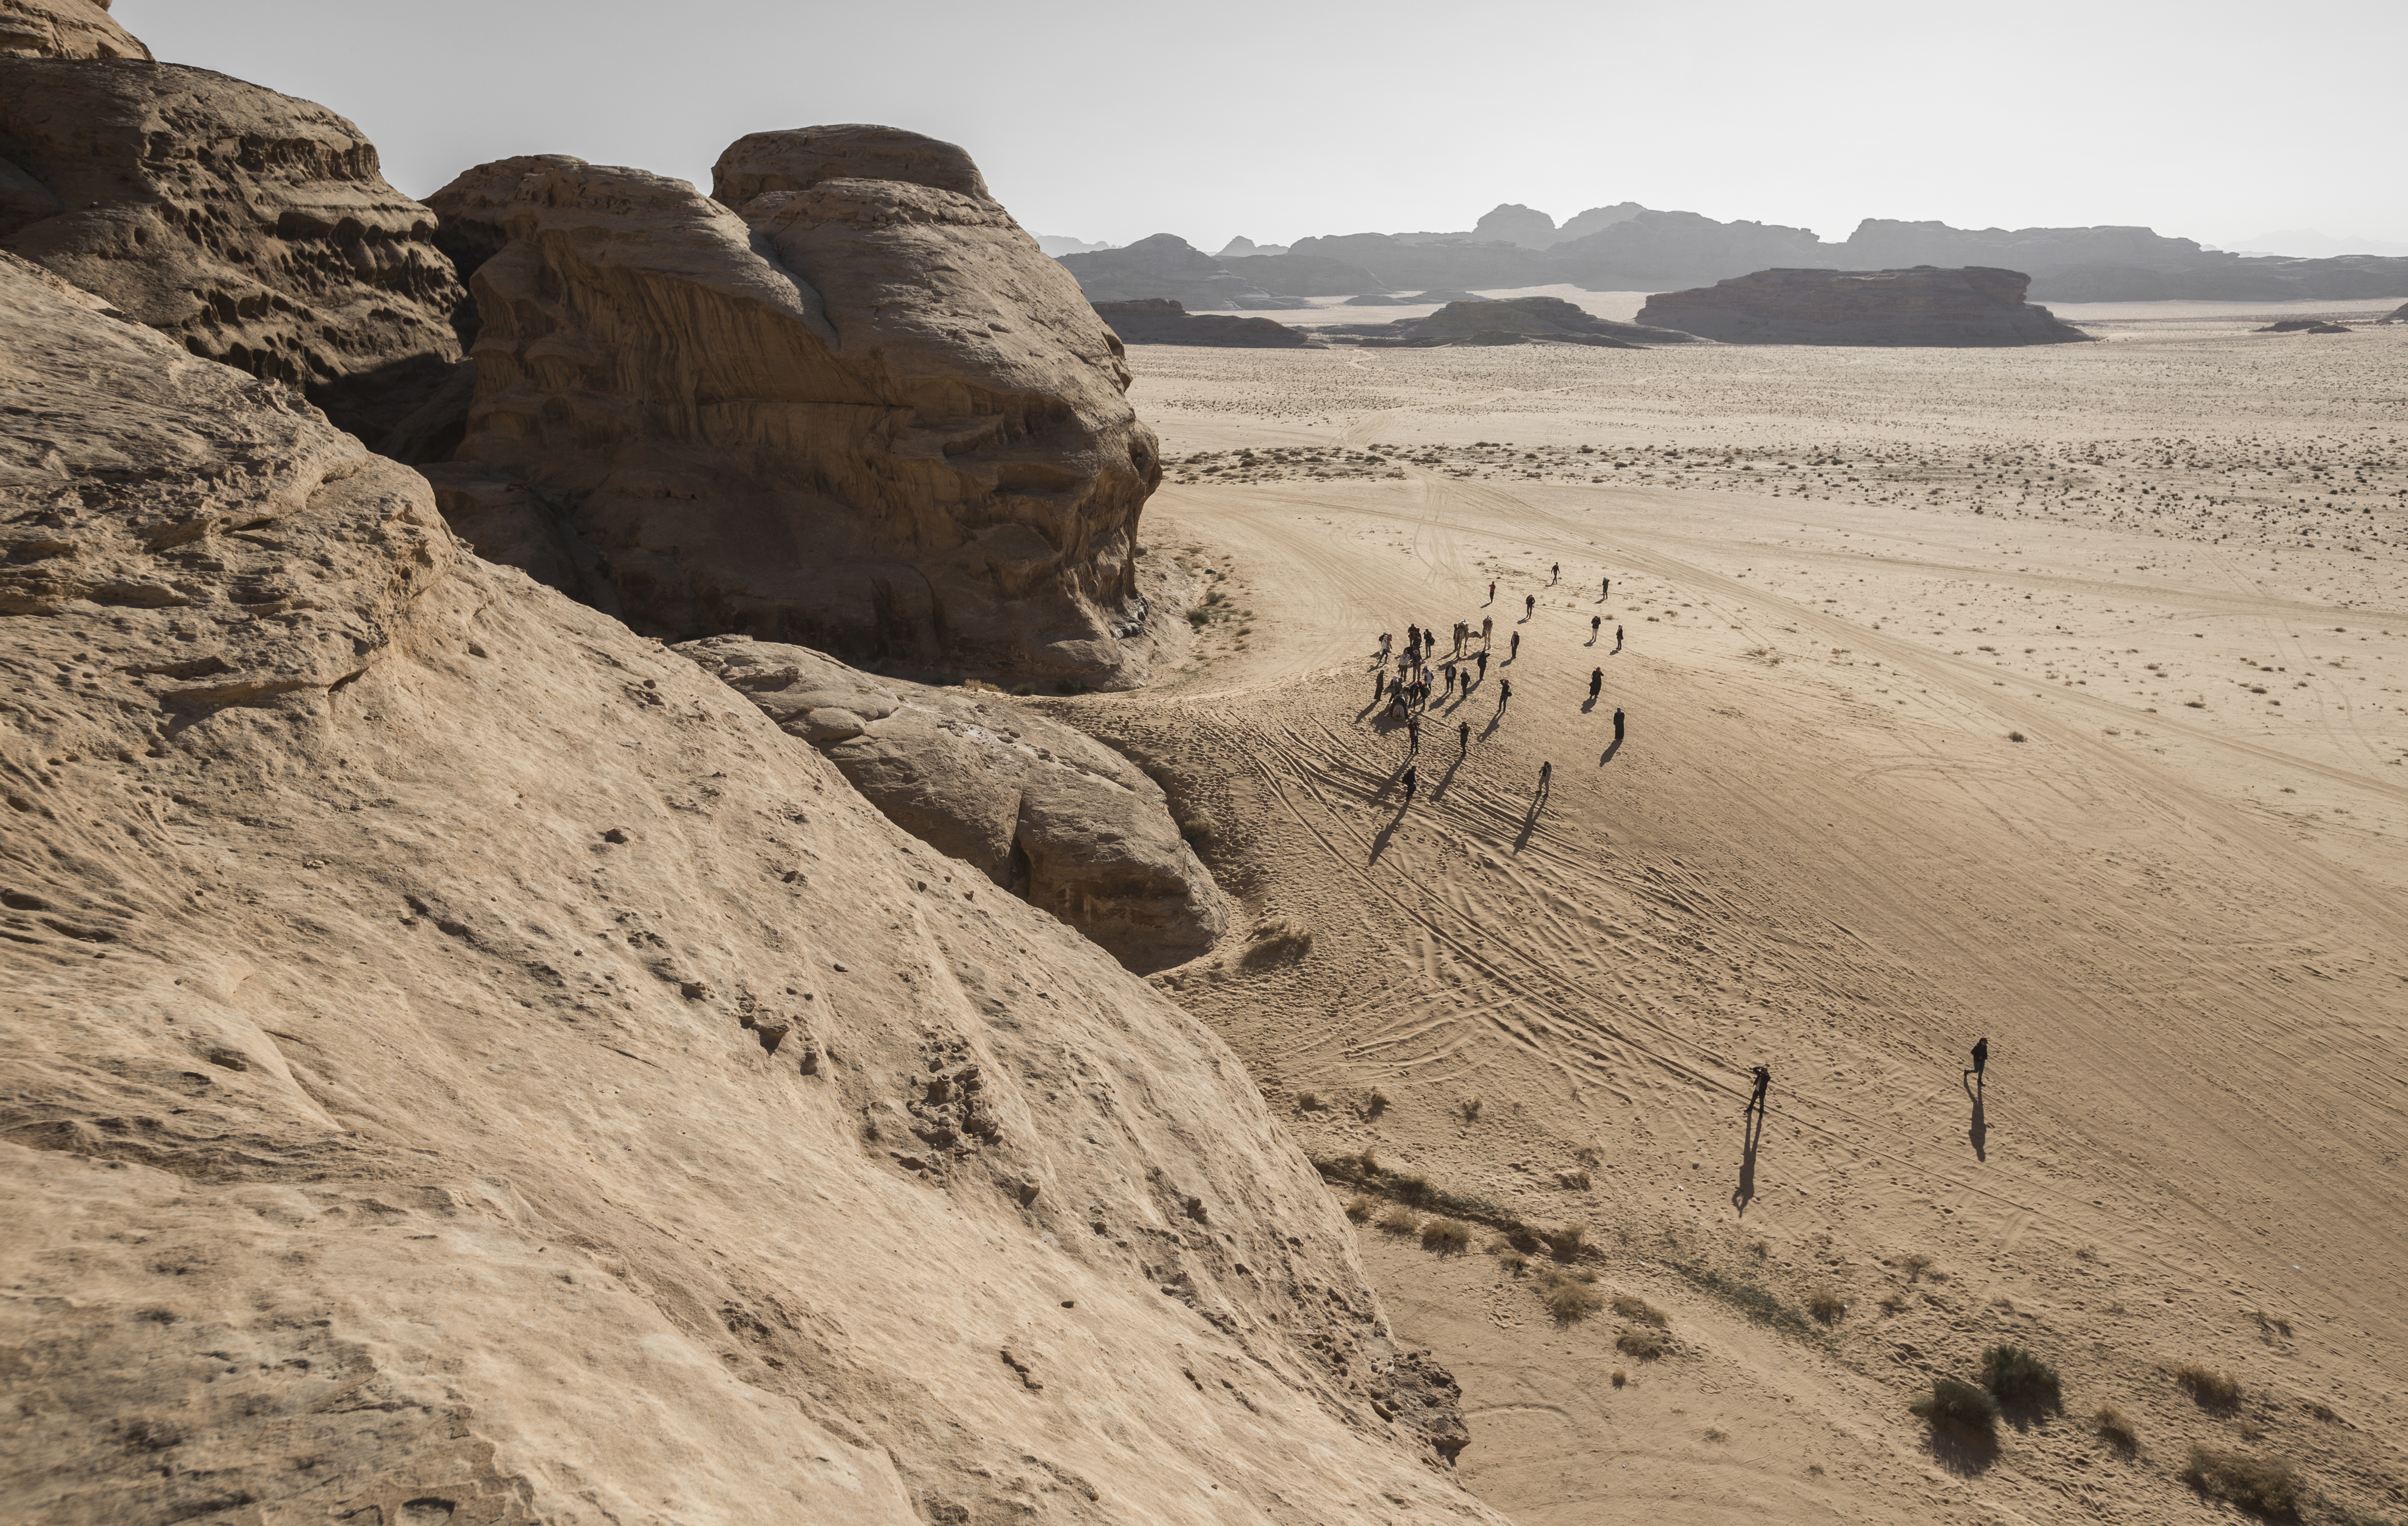 Lost in Wadi Rum